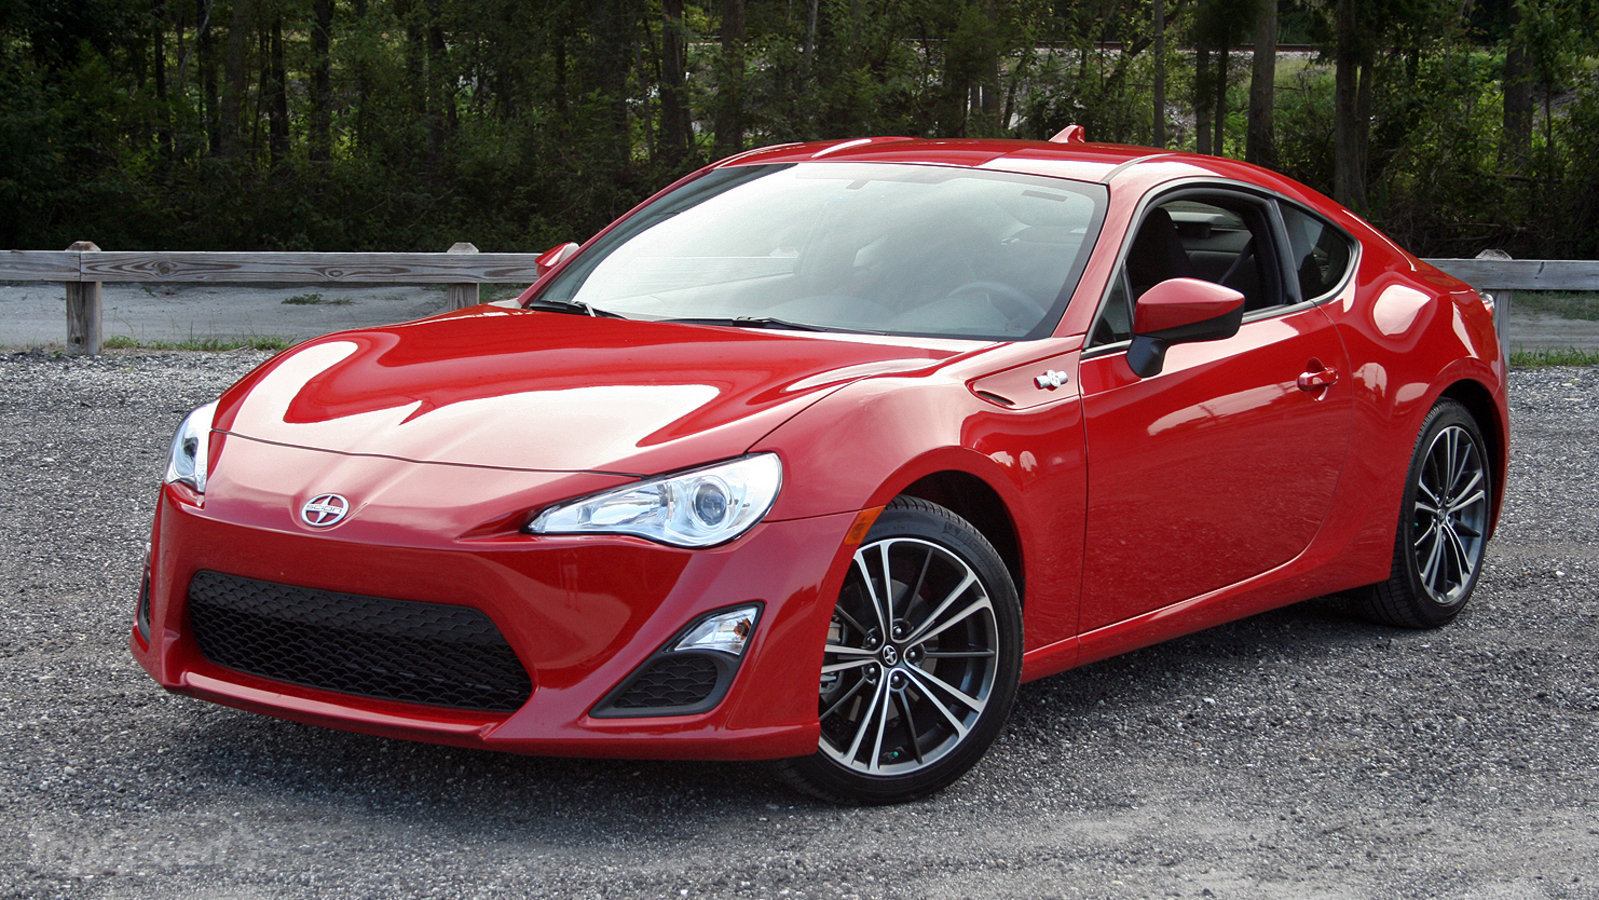 scion toyota fr models toyotas driven cars speed rebadged drops brand topspeed prices